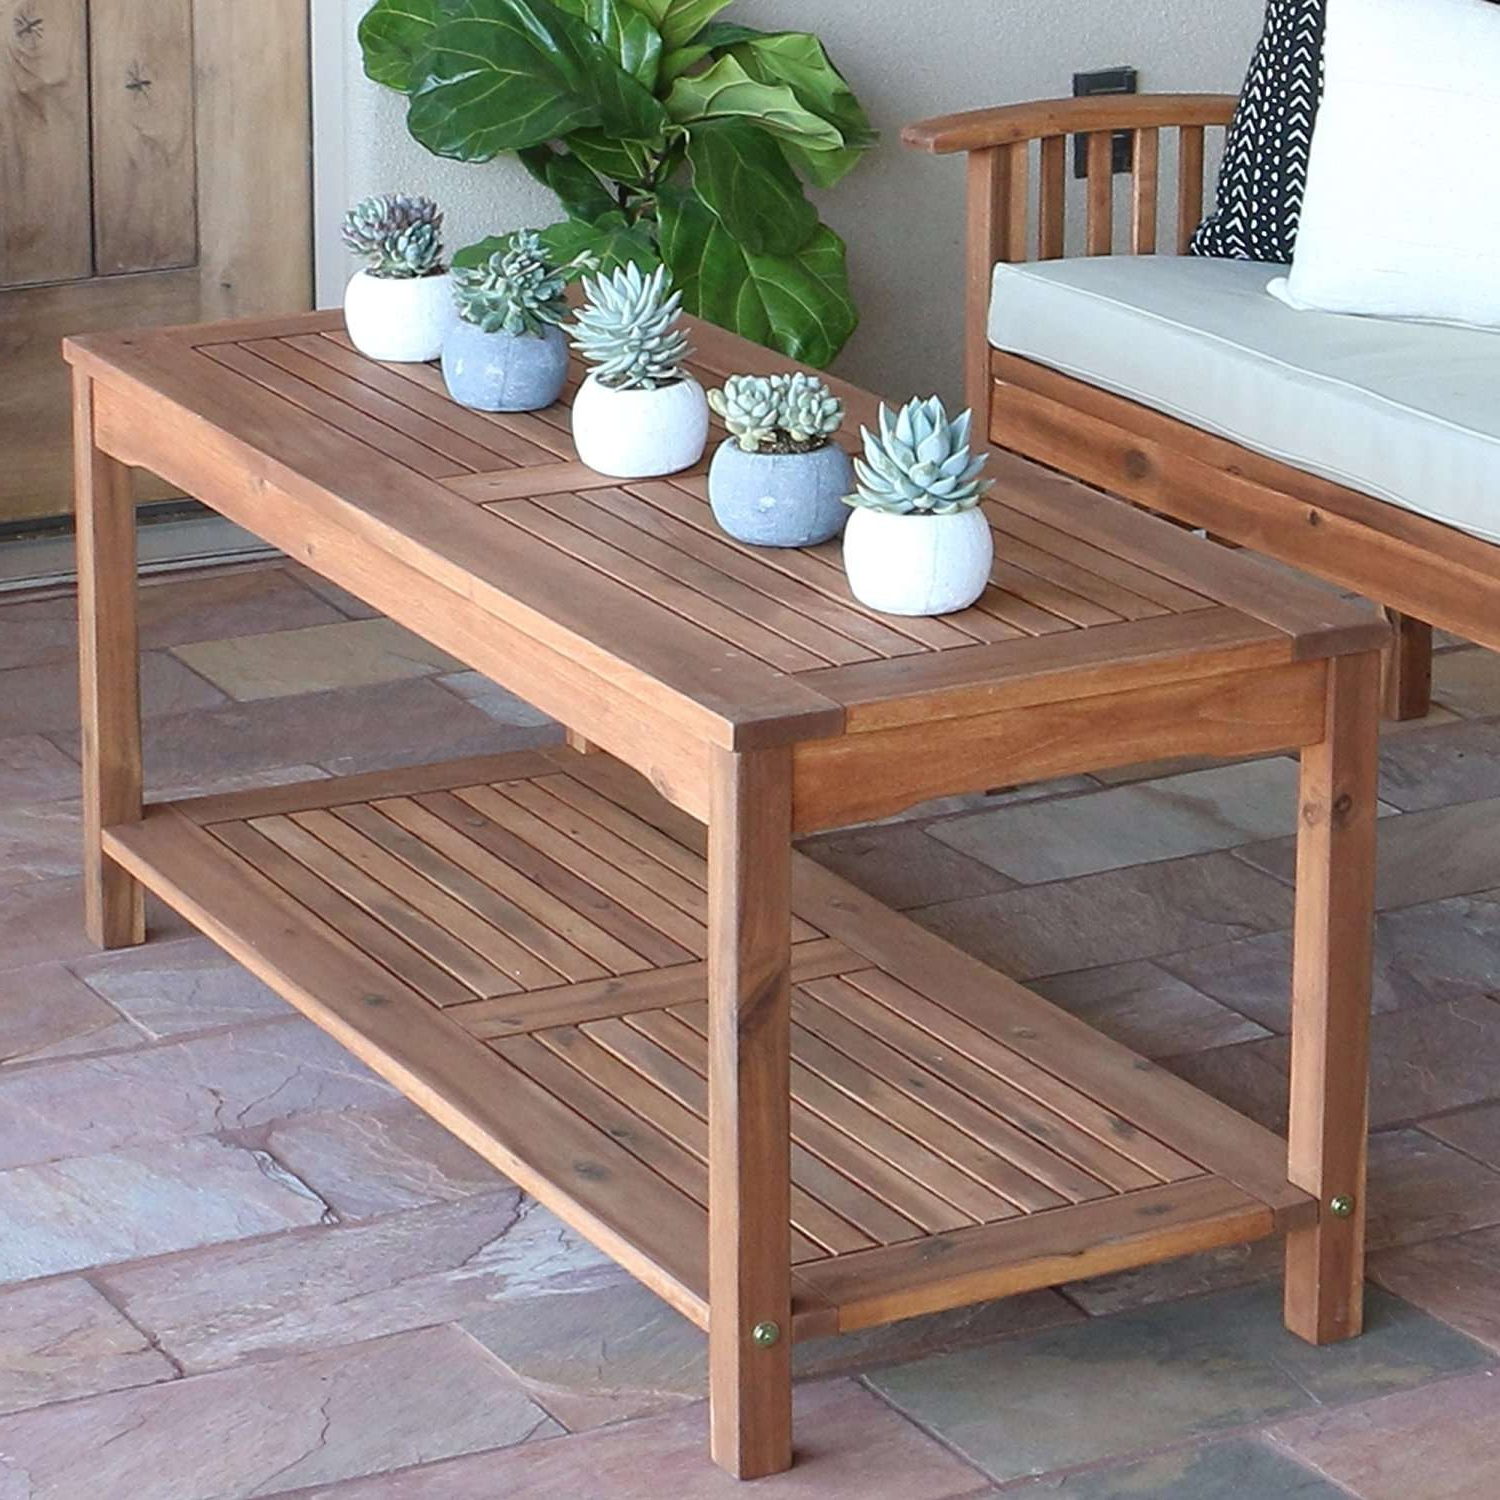 9 Crate And Barrel Concrete Coffee Table Gallery | Coffee Tables Ideas Throughout Parsons Walnut Top & Dark Steel Base 48X16 Console Tables (View 1 of 20)